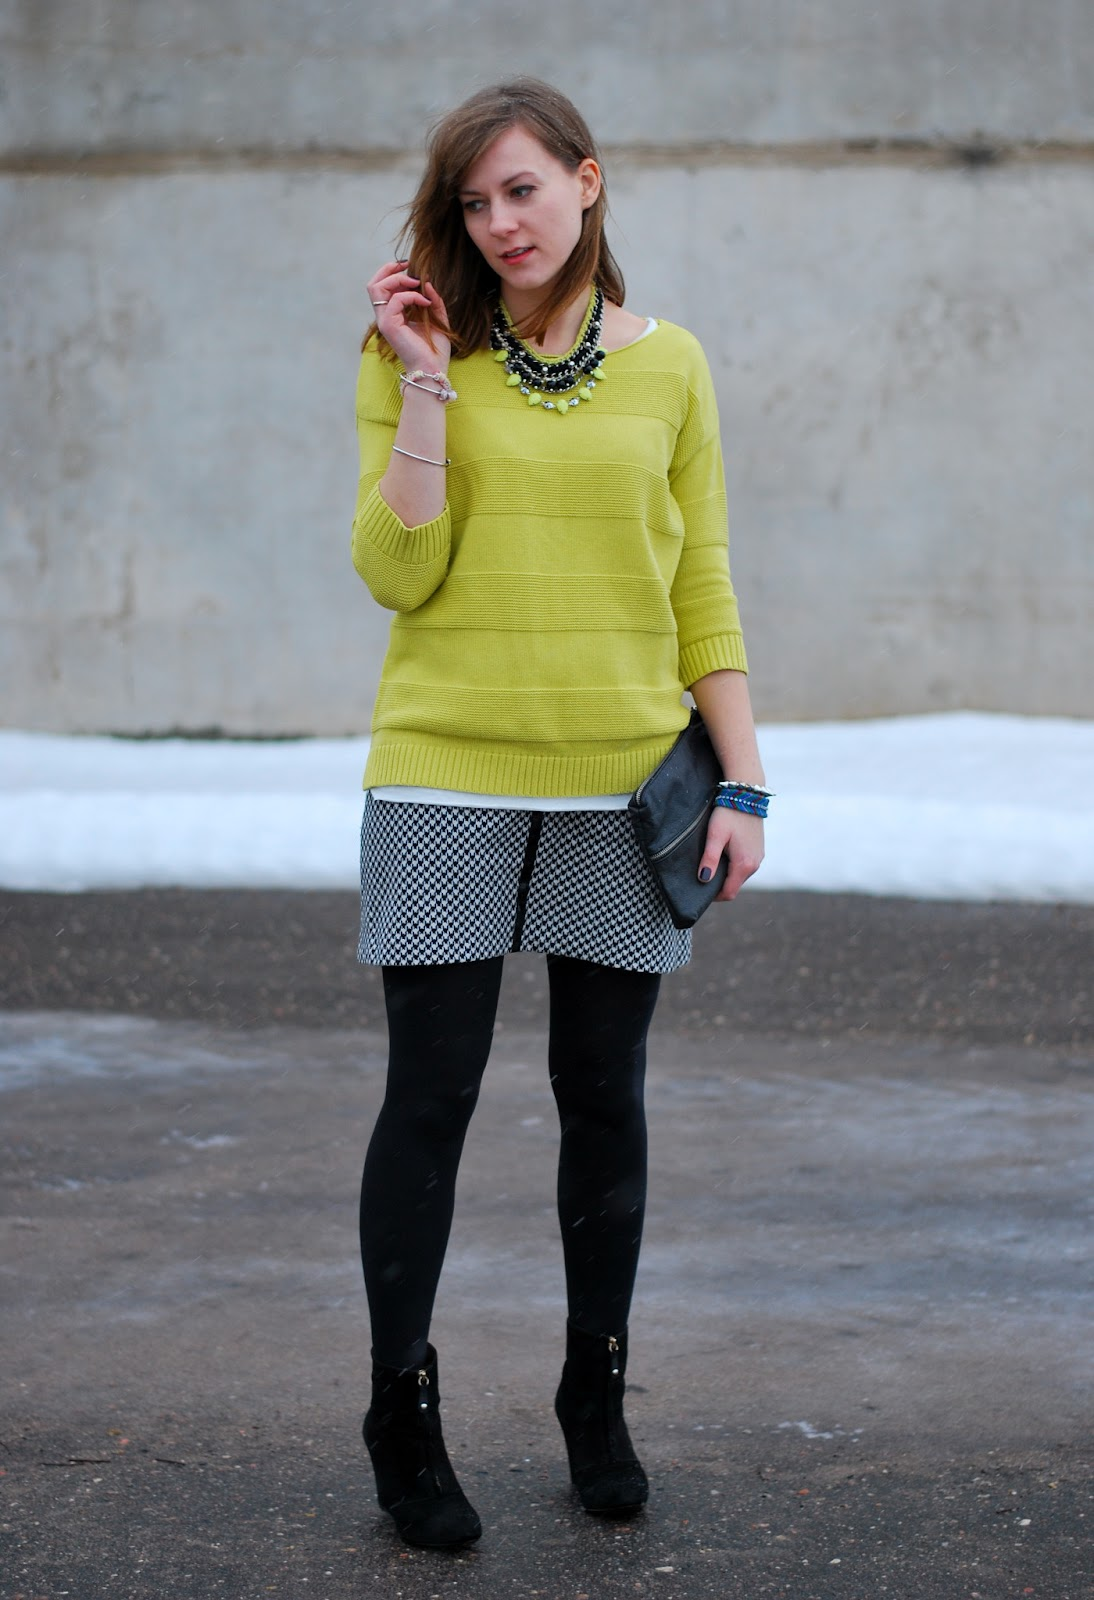 0b313883c58 ... cozy sweater to wear with this skirt to get fresh and sophisticated  outfit. Finally I found oversized neon lime sweater. I think sweater and  skirt work ...